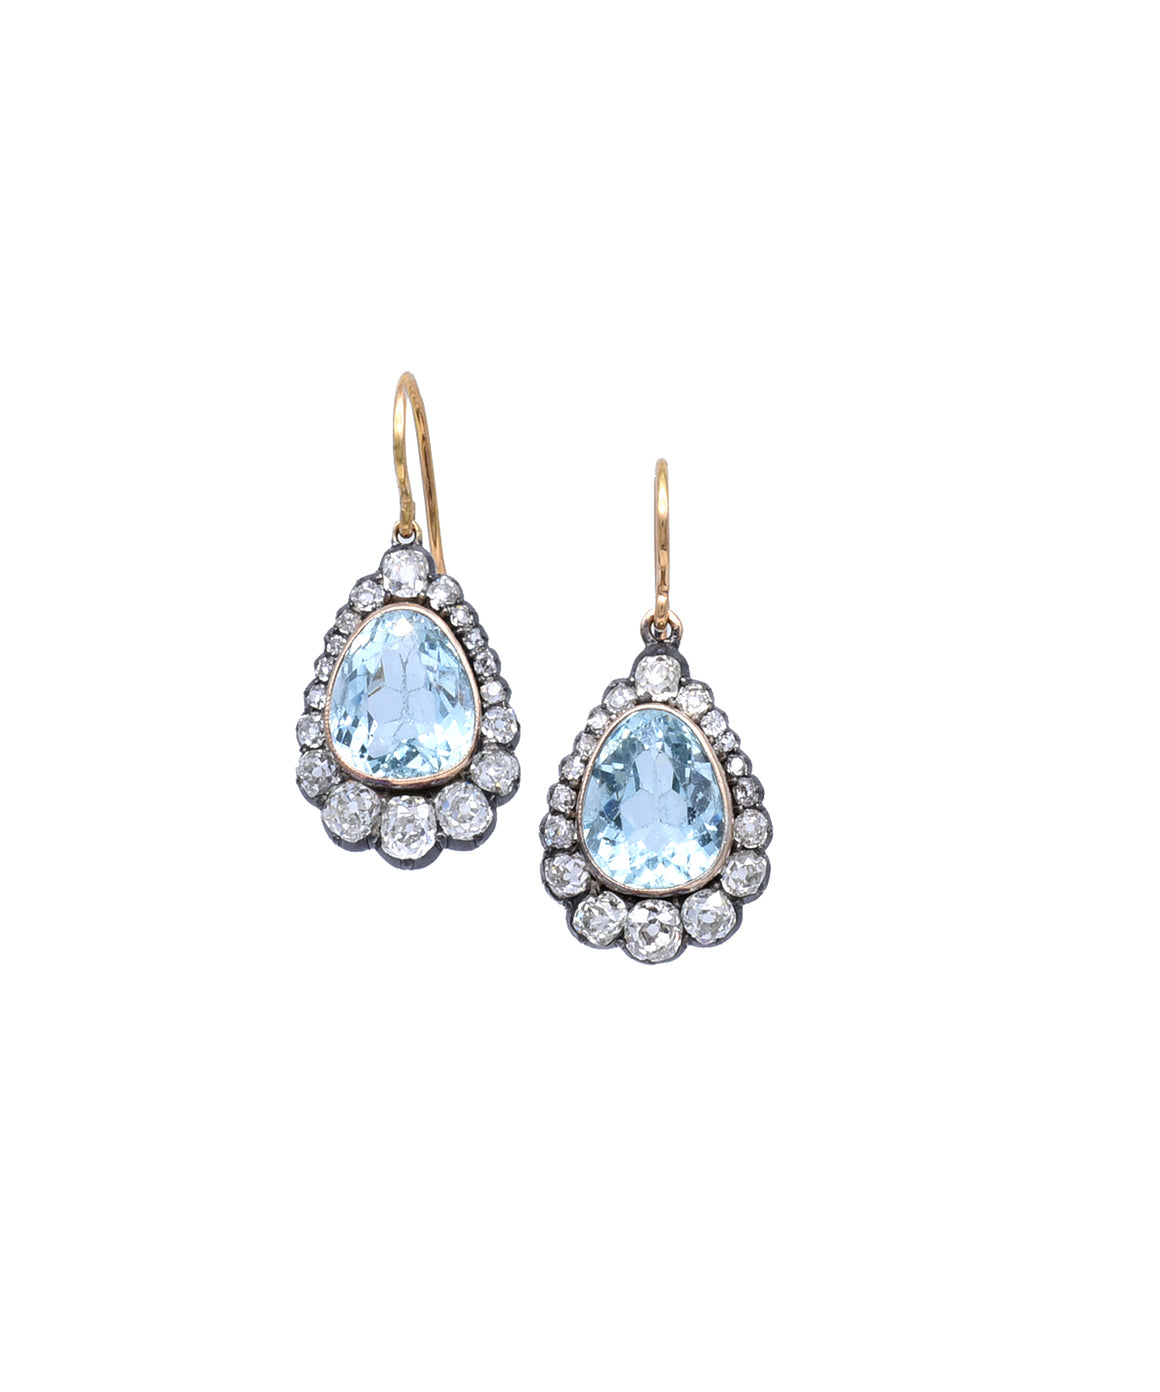 "The limpid blue aquamarines are highlighted by sparkling diamonds in these lovely vintage earrings. The silver and gold pear-shaped drops are about 1 1/8"" long."